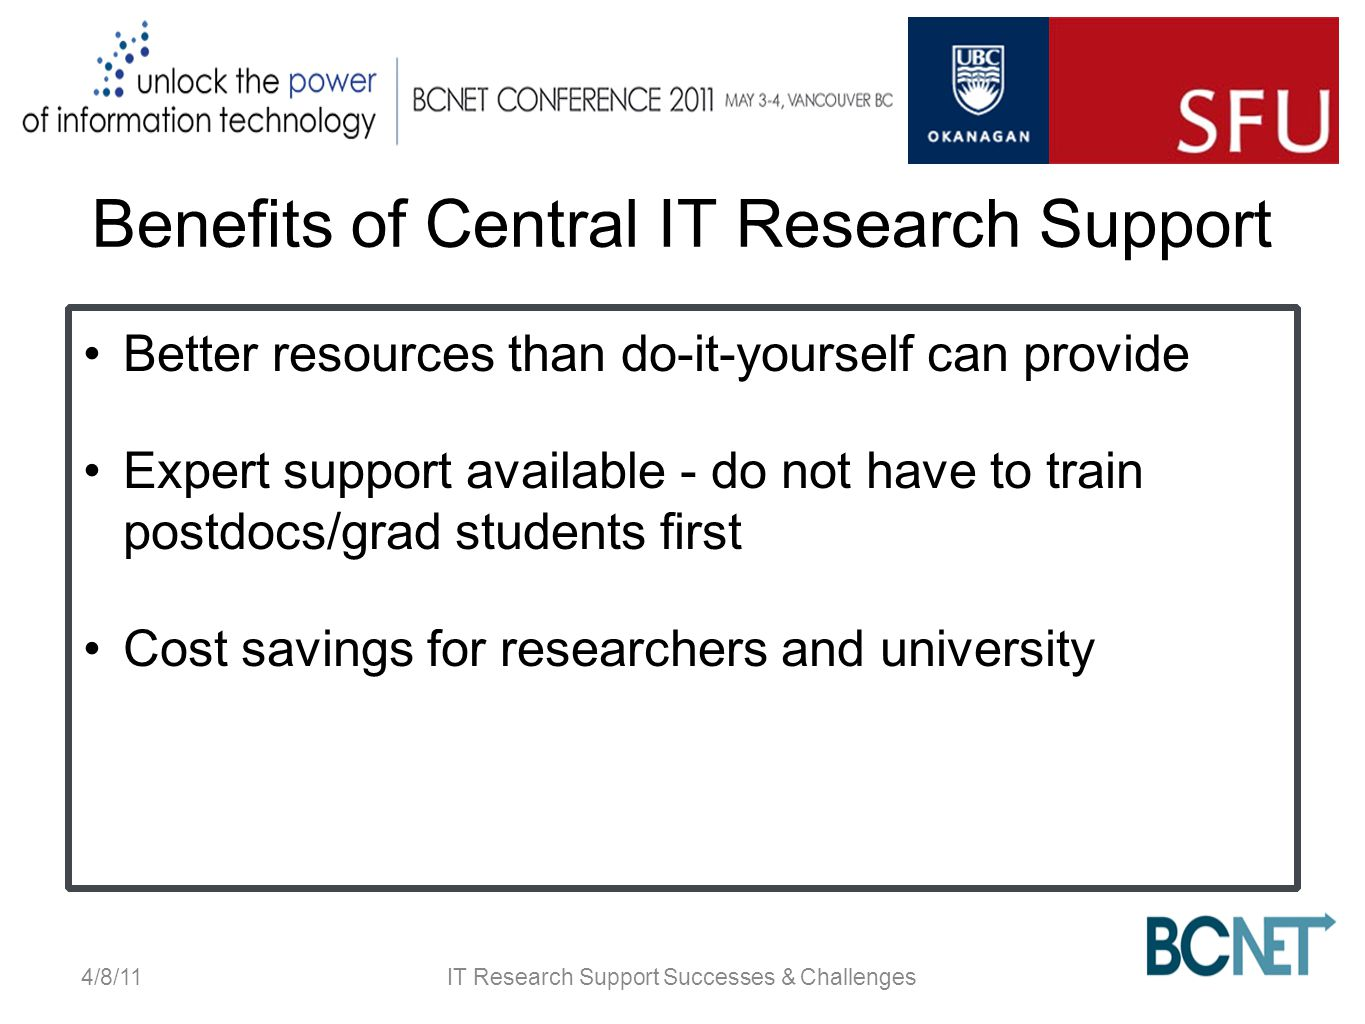 Benefits of Central IT Research Support Better resources than do-it-yourself can provide Expert support available - do not have to train postdocs/grad students first Cost savings for researchers and university 4/8/11IT Research Support Successes & Challenges